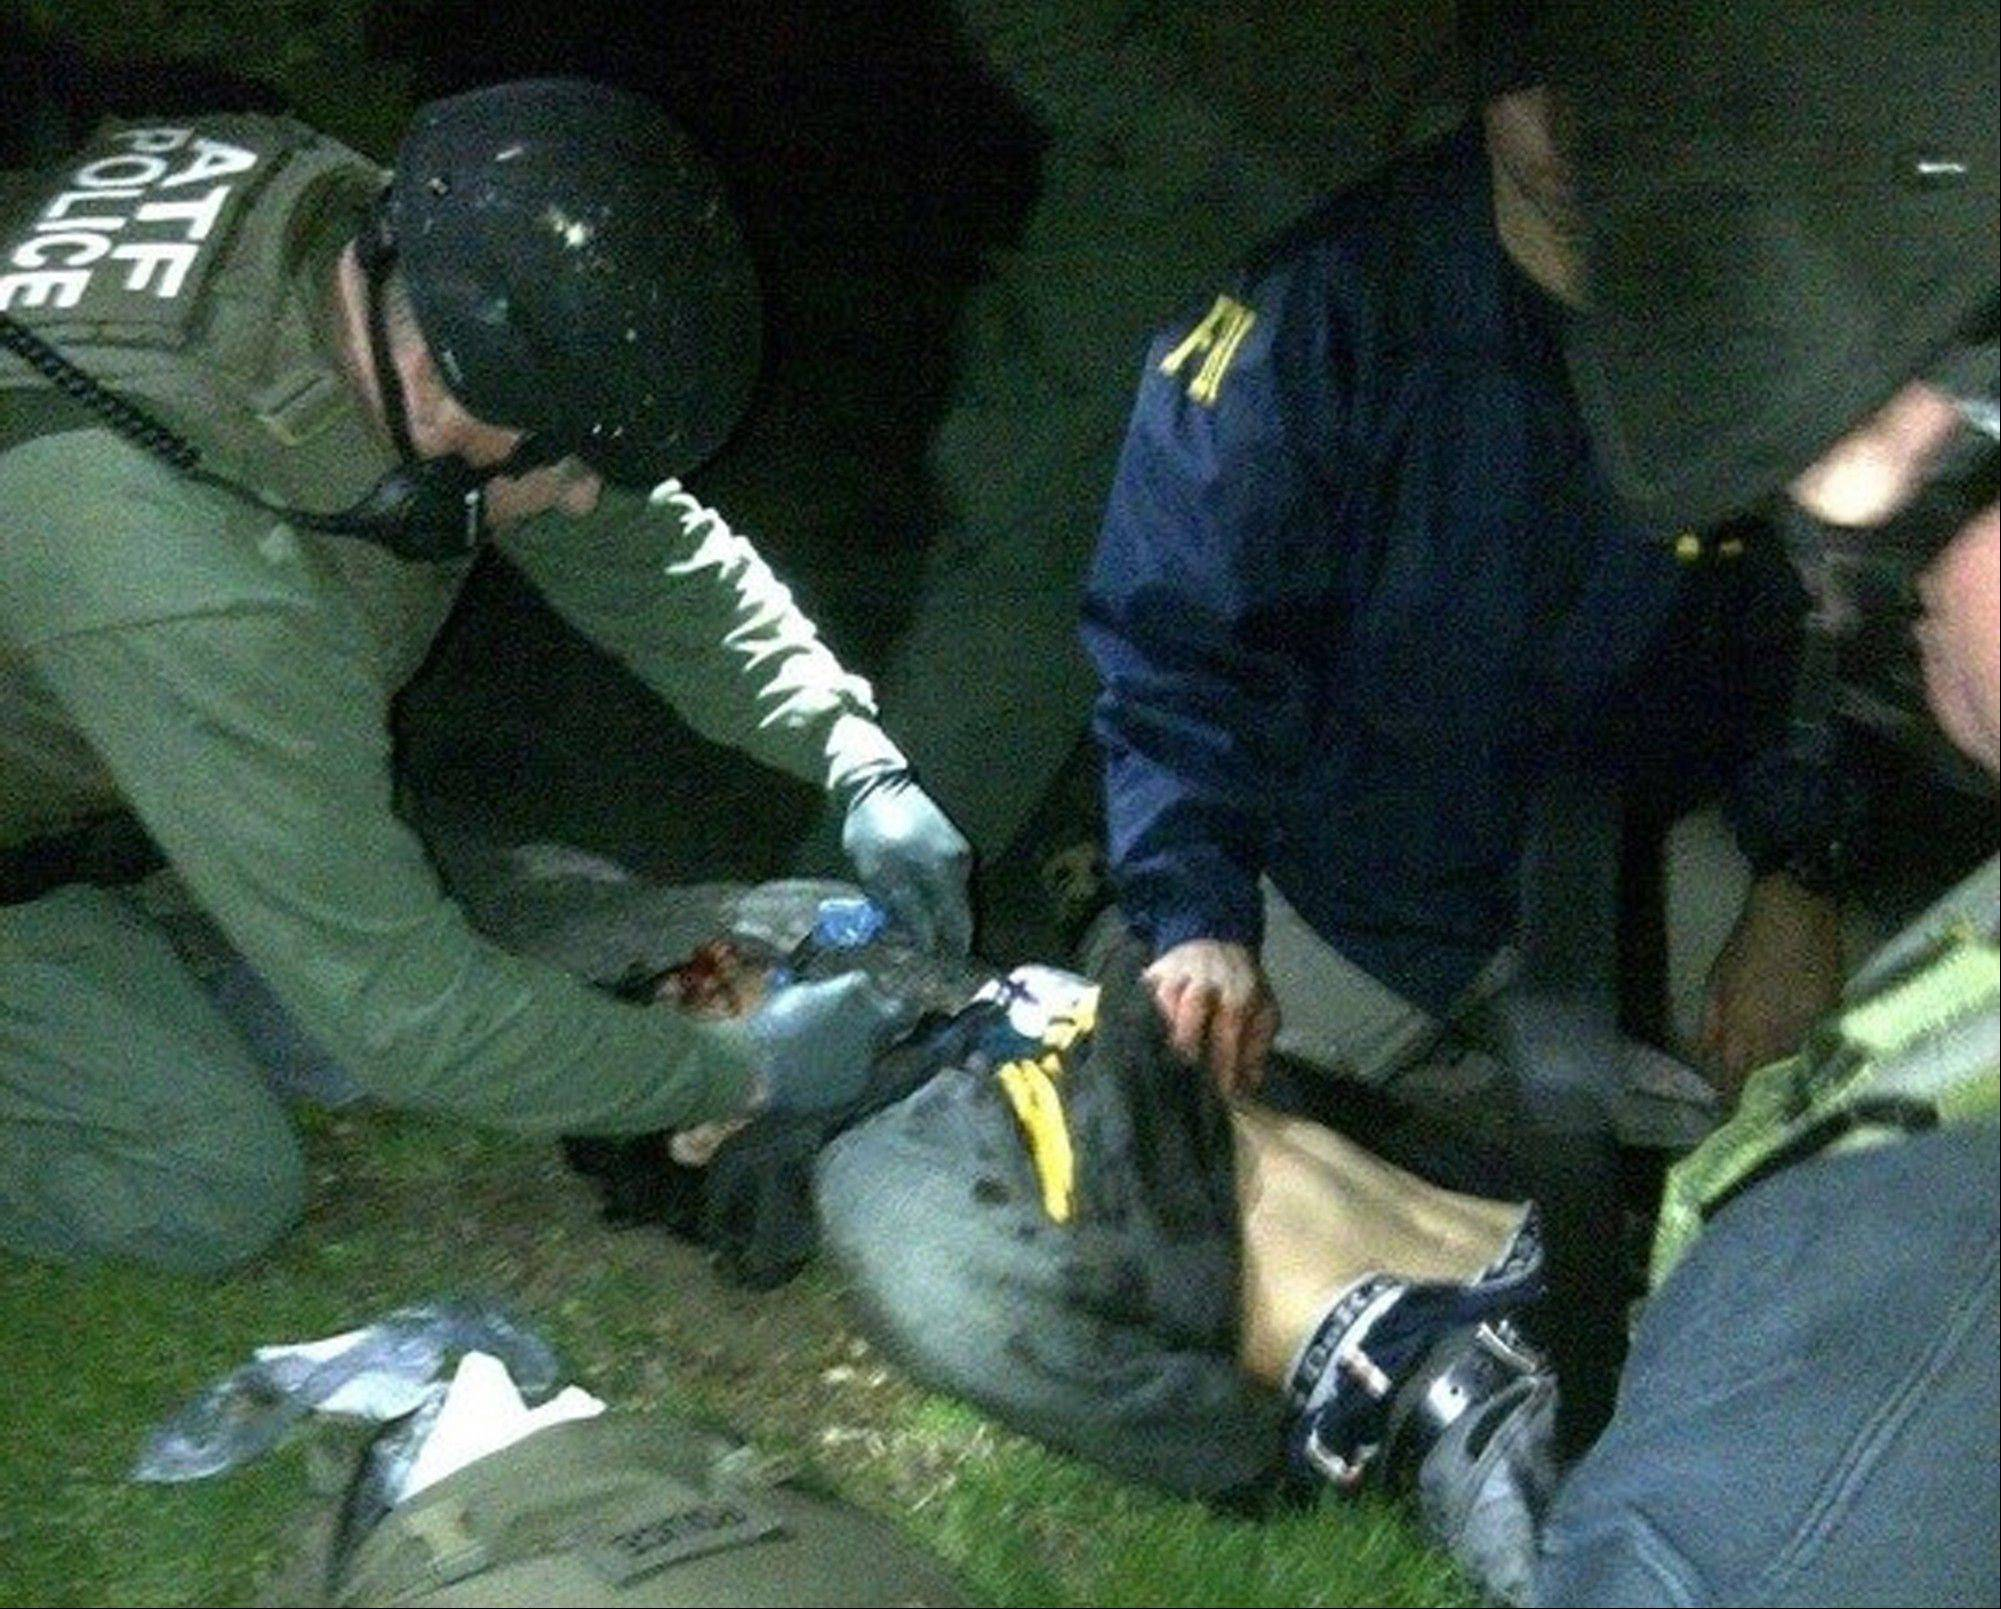 Federal agents check suspect Dzhokhar Tsarnaev for explosives and also give him medical attention Friday night after he was apprehended in Watertown, Mass.